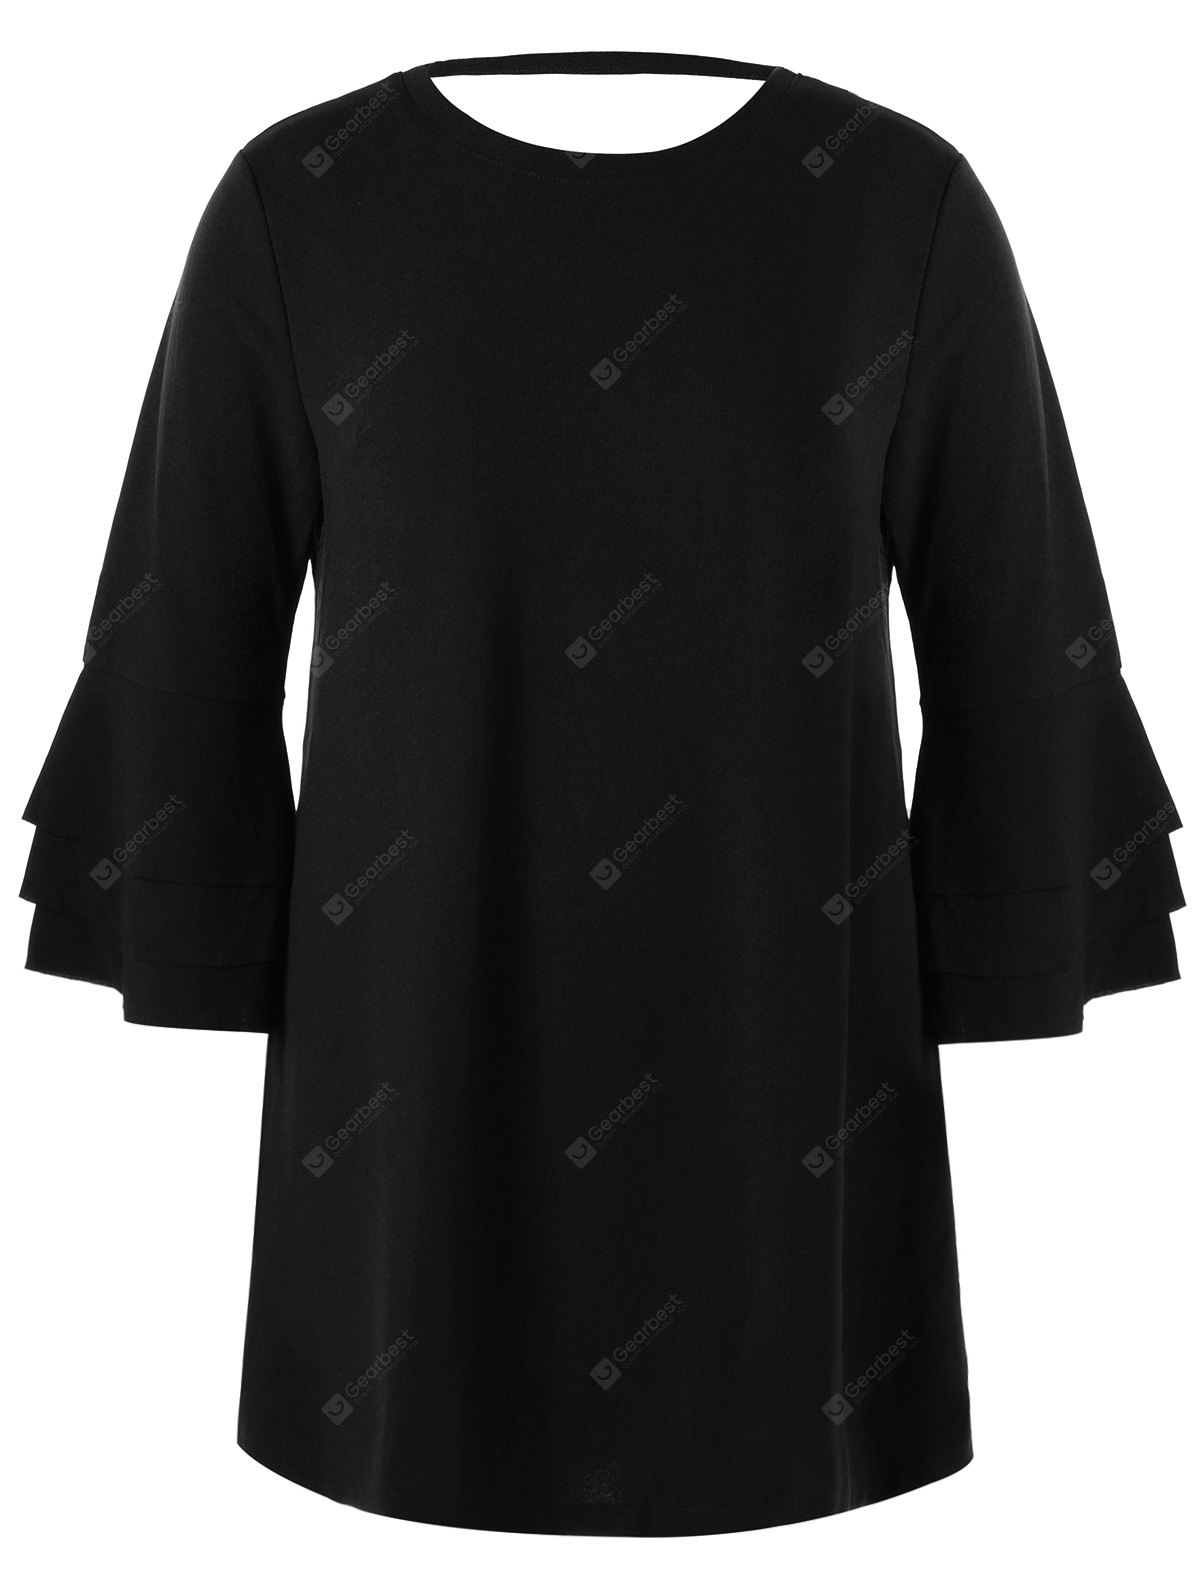 Layered Flare Sleeve Plus Size Tunic Top